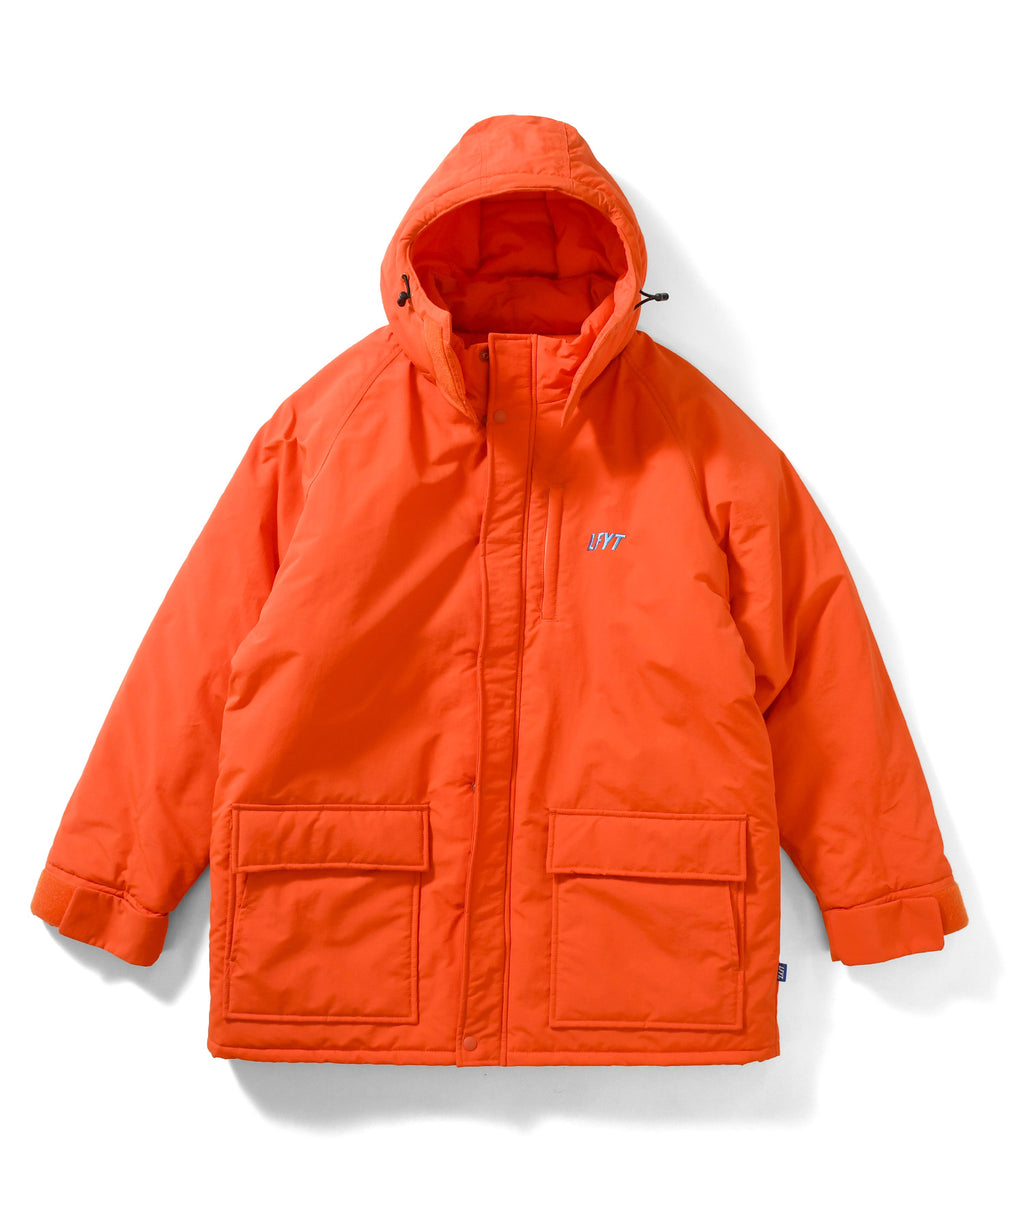 PRIMALOFT OVER SIZED JACKET LA201013 ORANGE